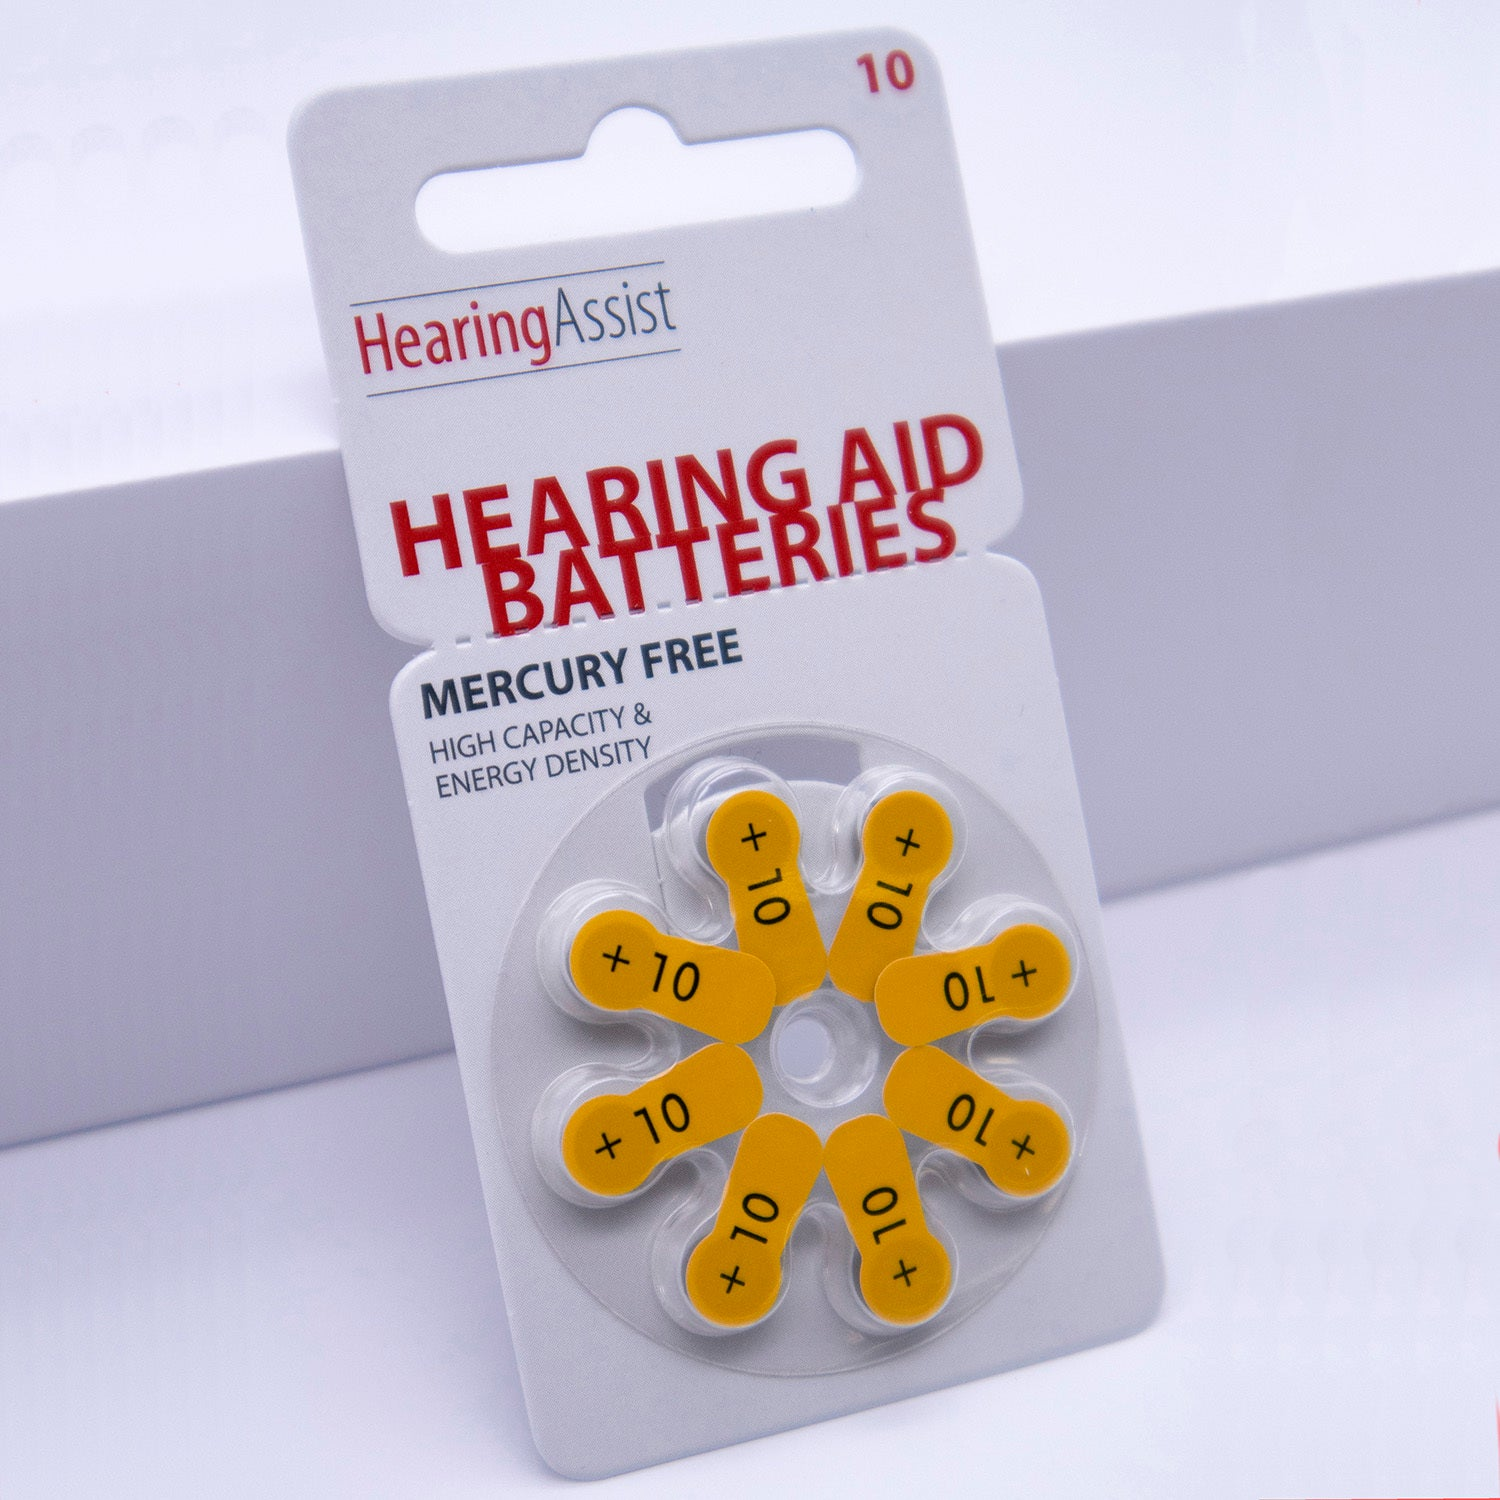 Hearing Assist Batteries